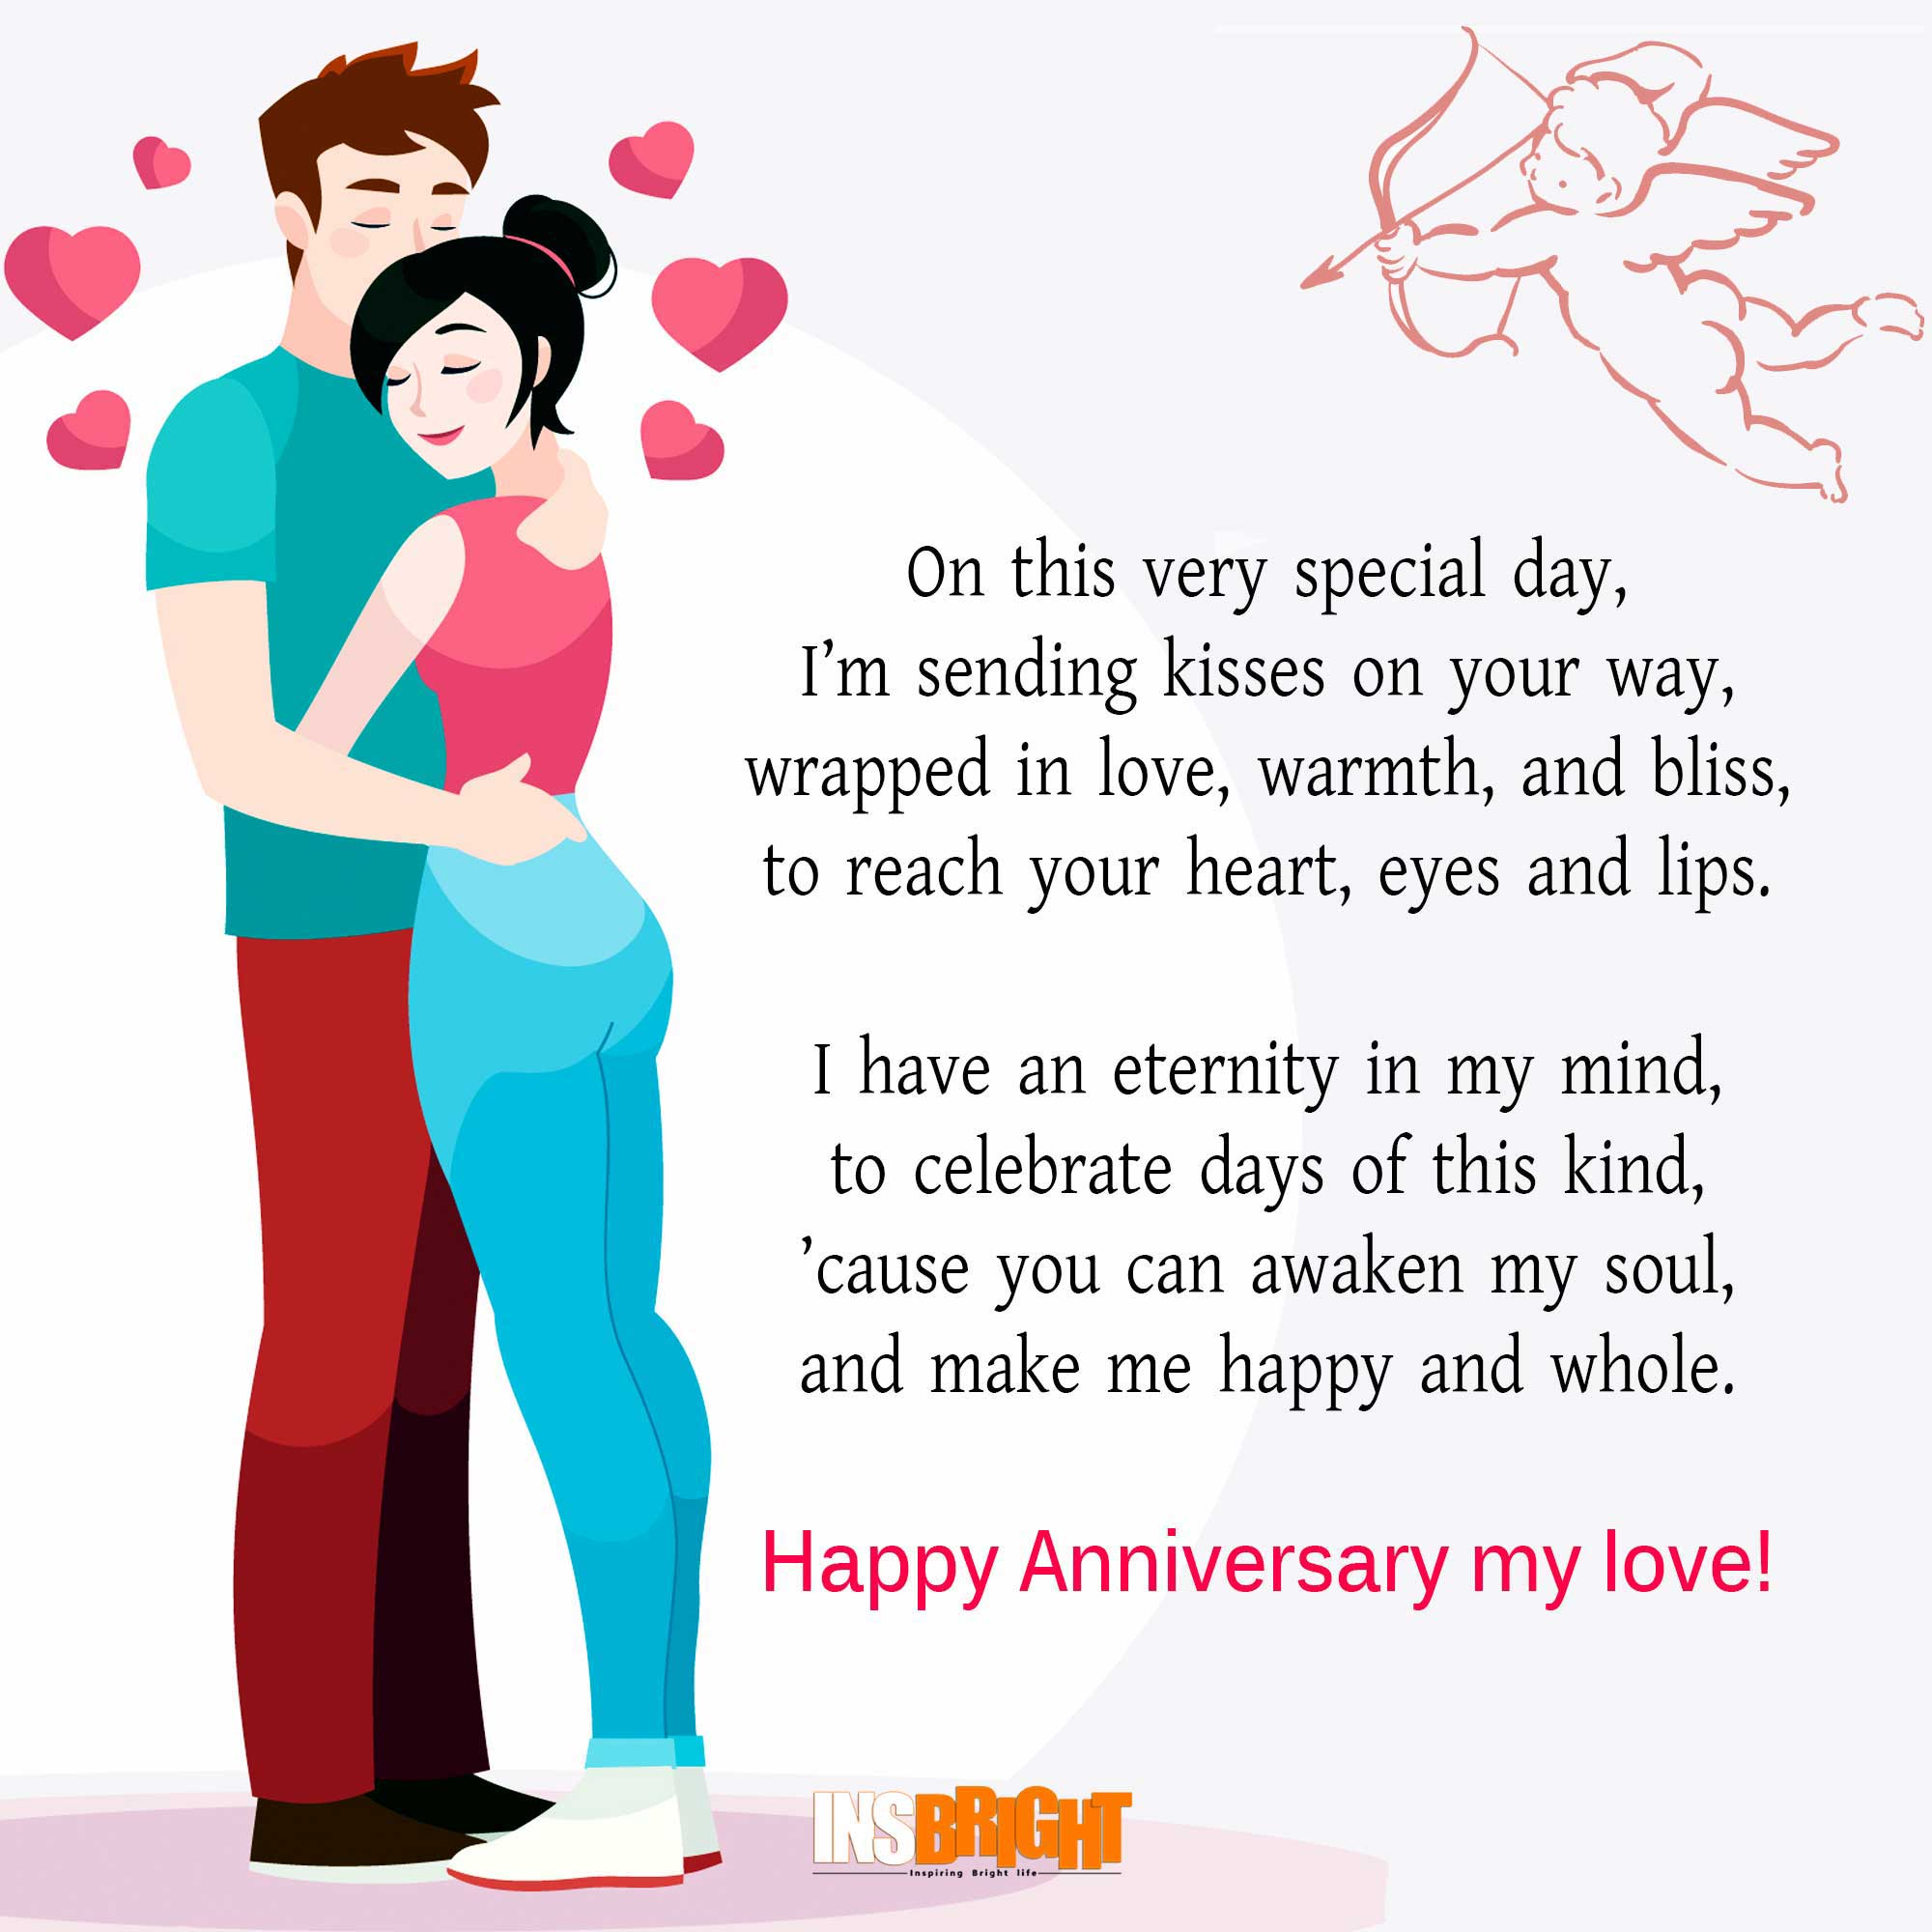 Cute Hy Anniversary Poems For Him Or Her With Images Insbright